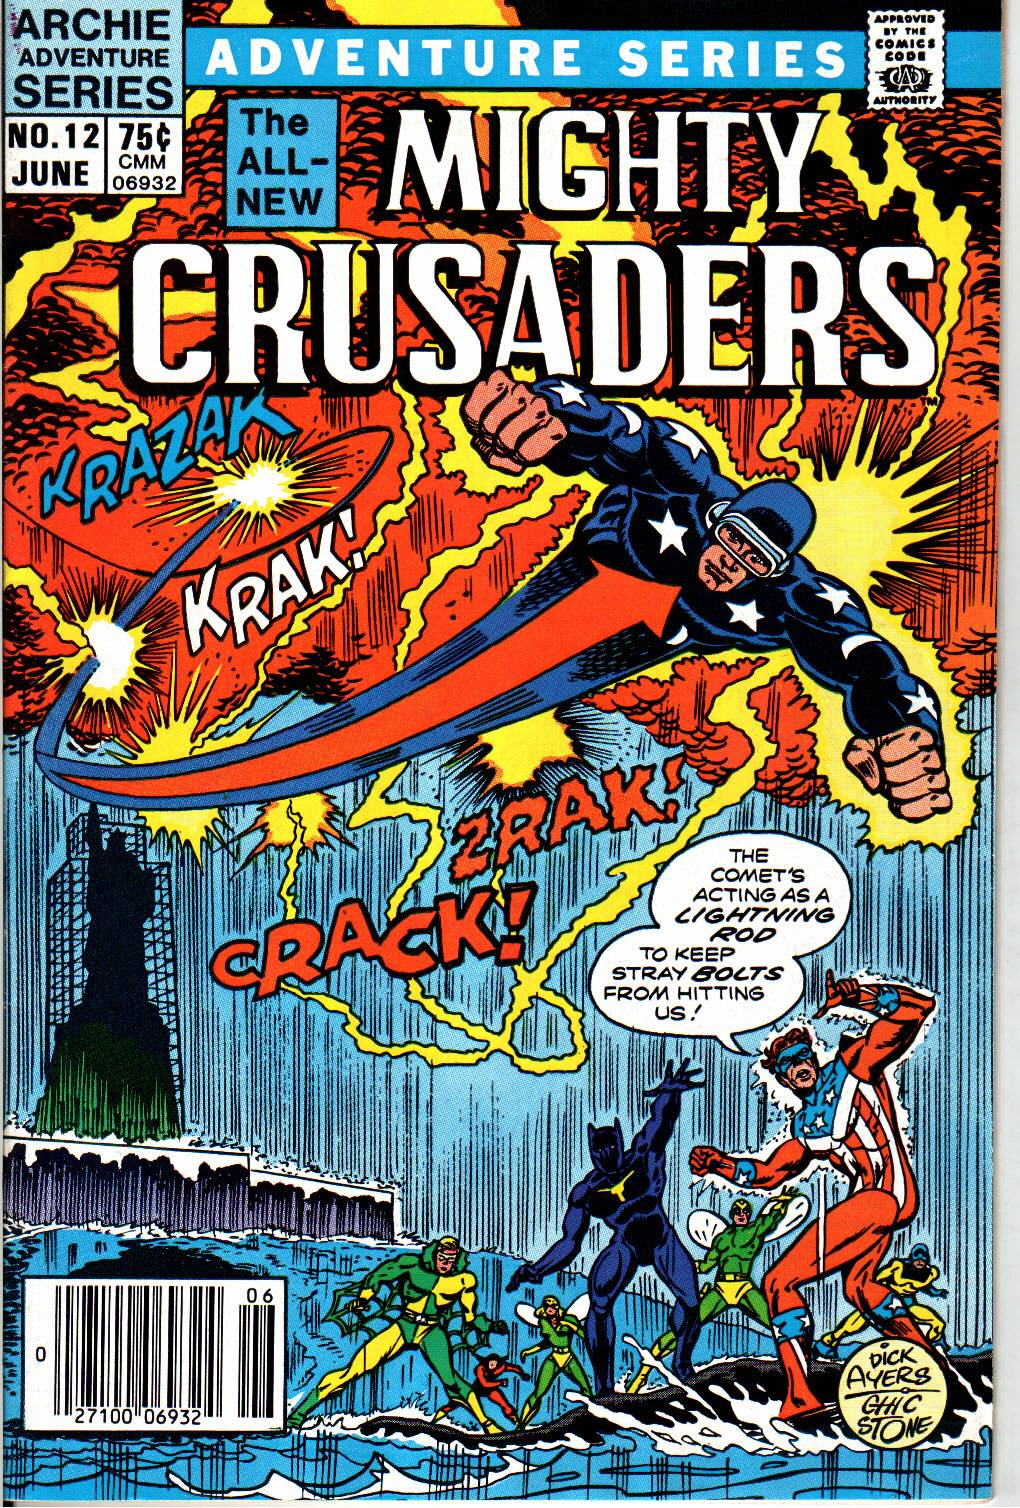 The All New Adventures of the Mighty Crusaders 12 Page 1